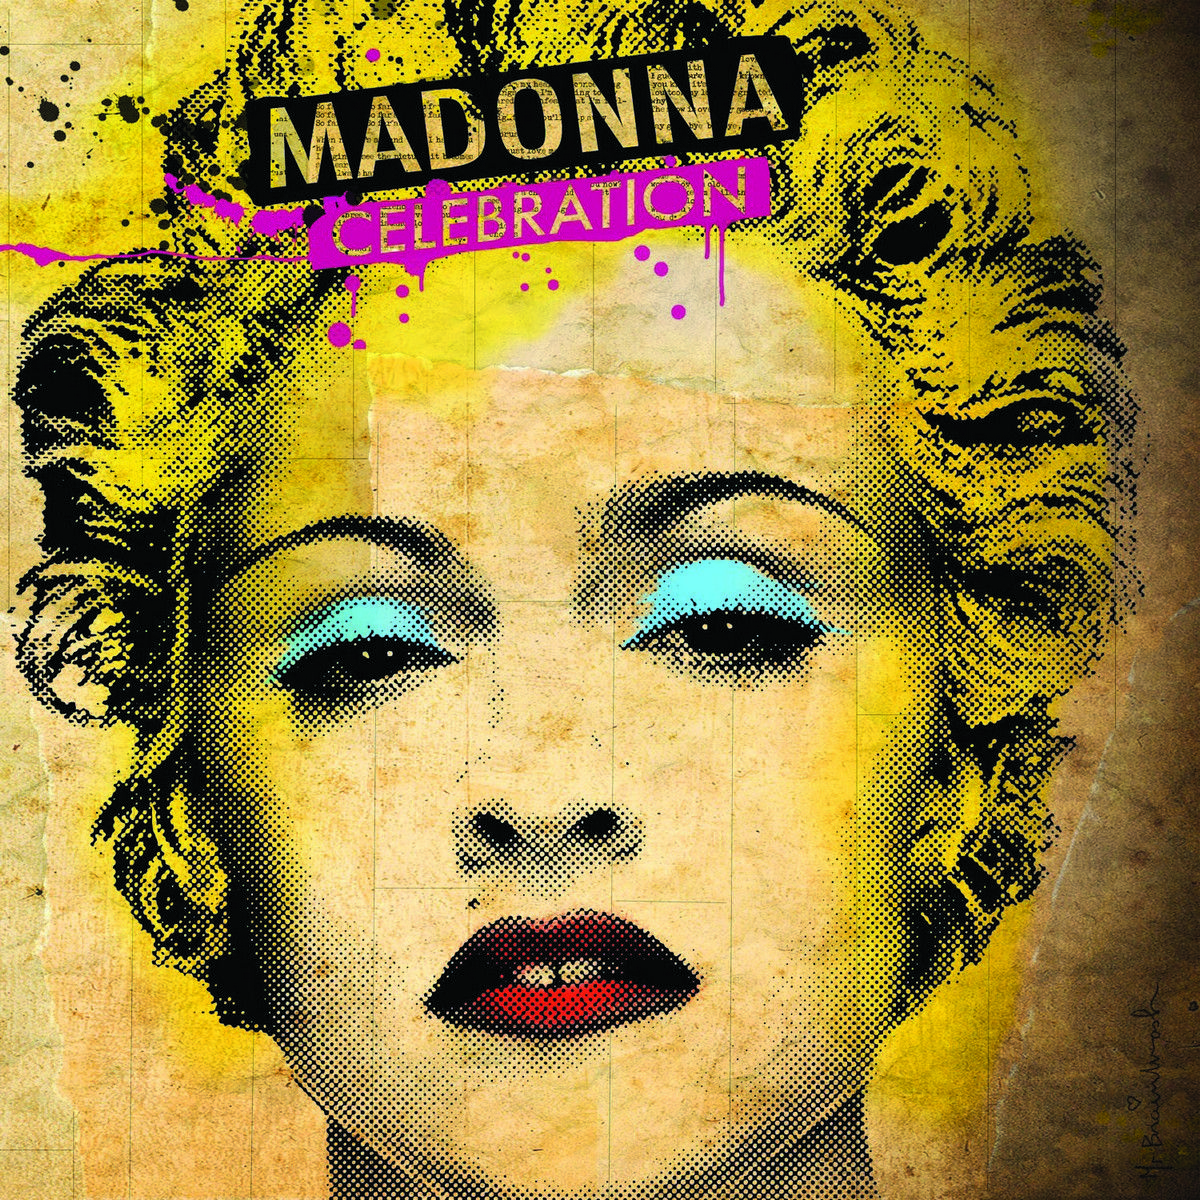 Madonna - Celebration | Albums To Hang On The Wall | Pinterest ...